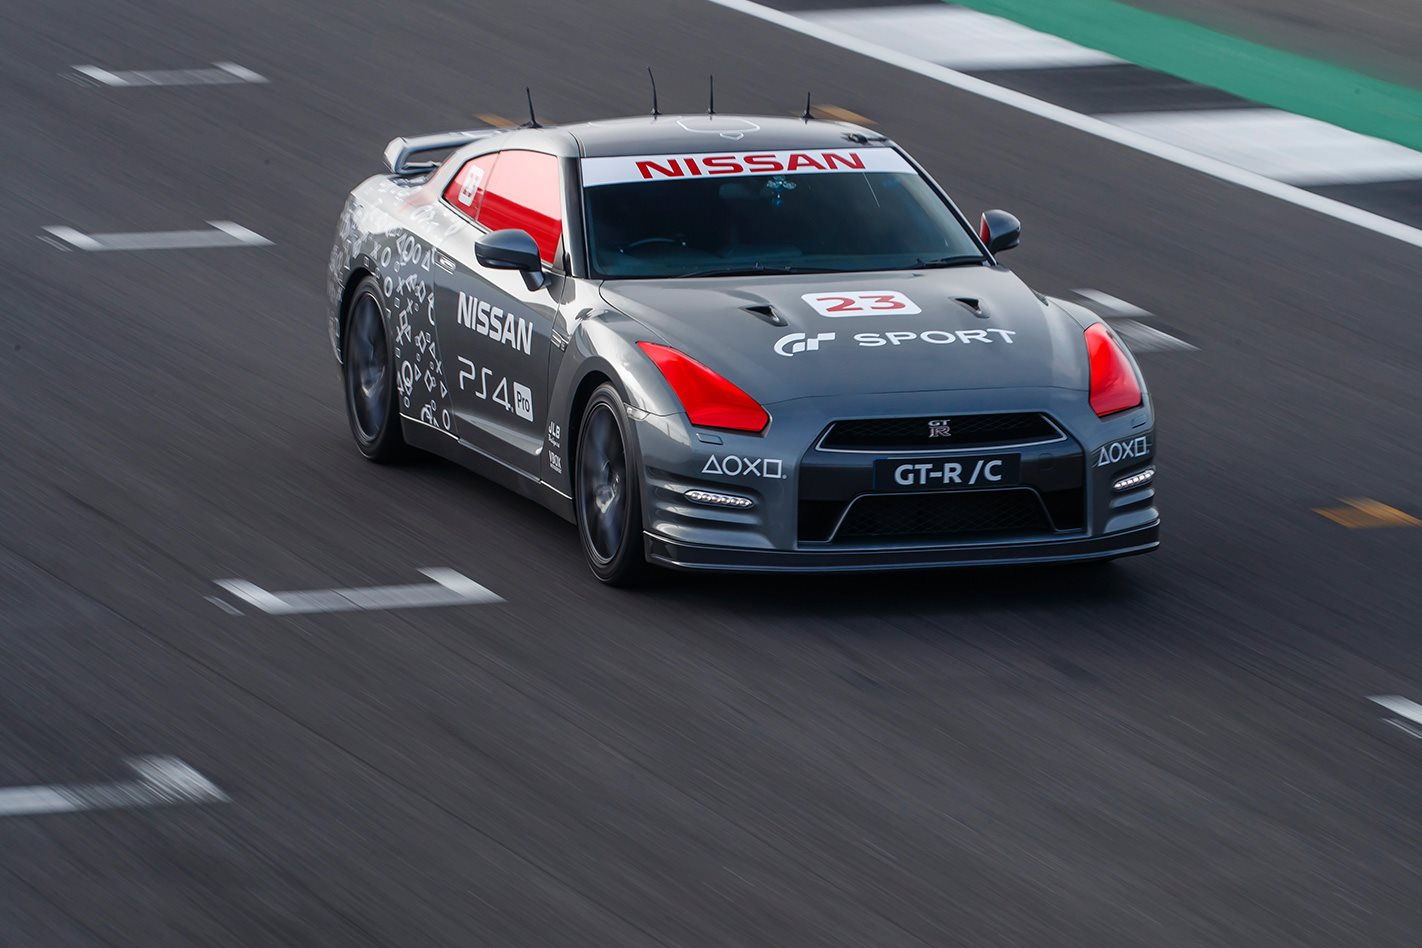 Nissan GT-R /C Flies Around Silverstone with No Driver Inside